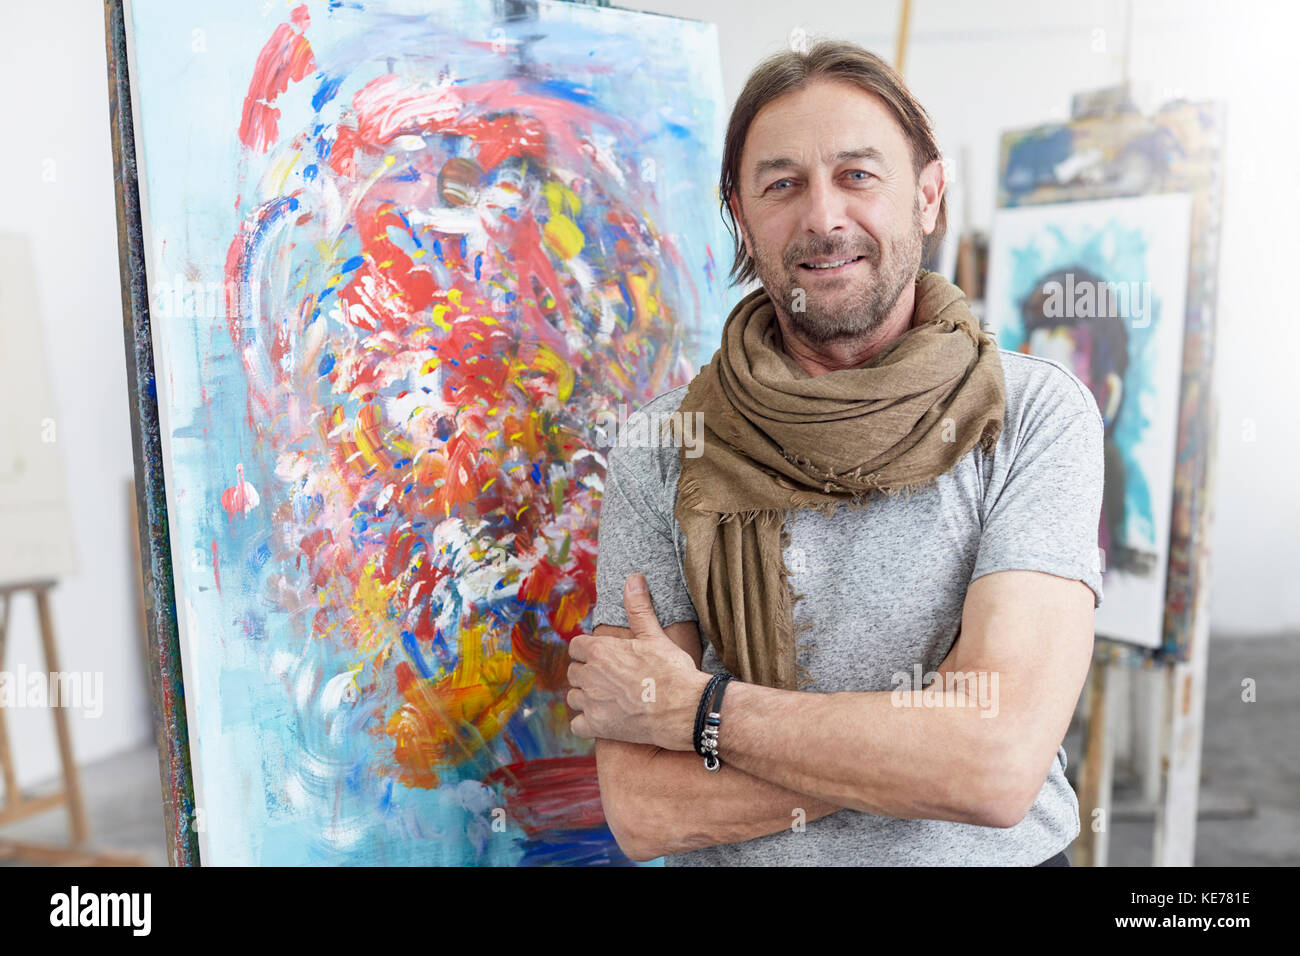 Portrait smiling, confident artist standing at abstract painting in art class studio - Stock Image